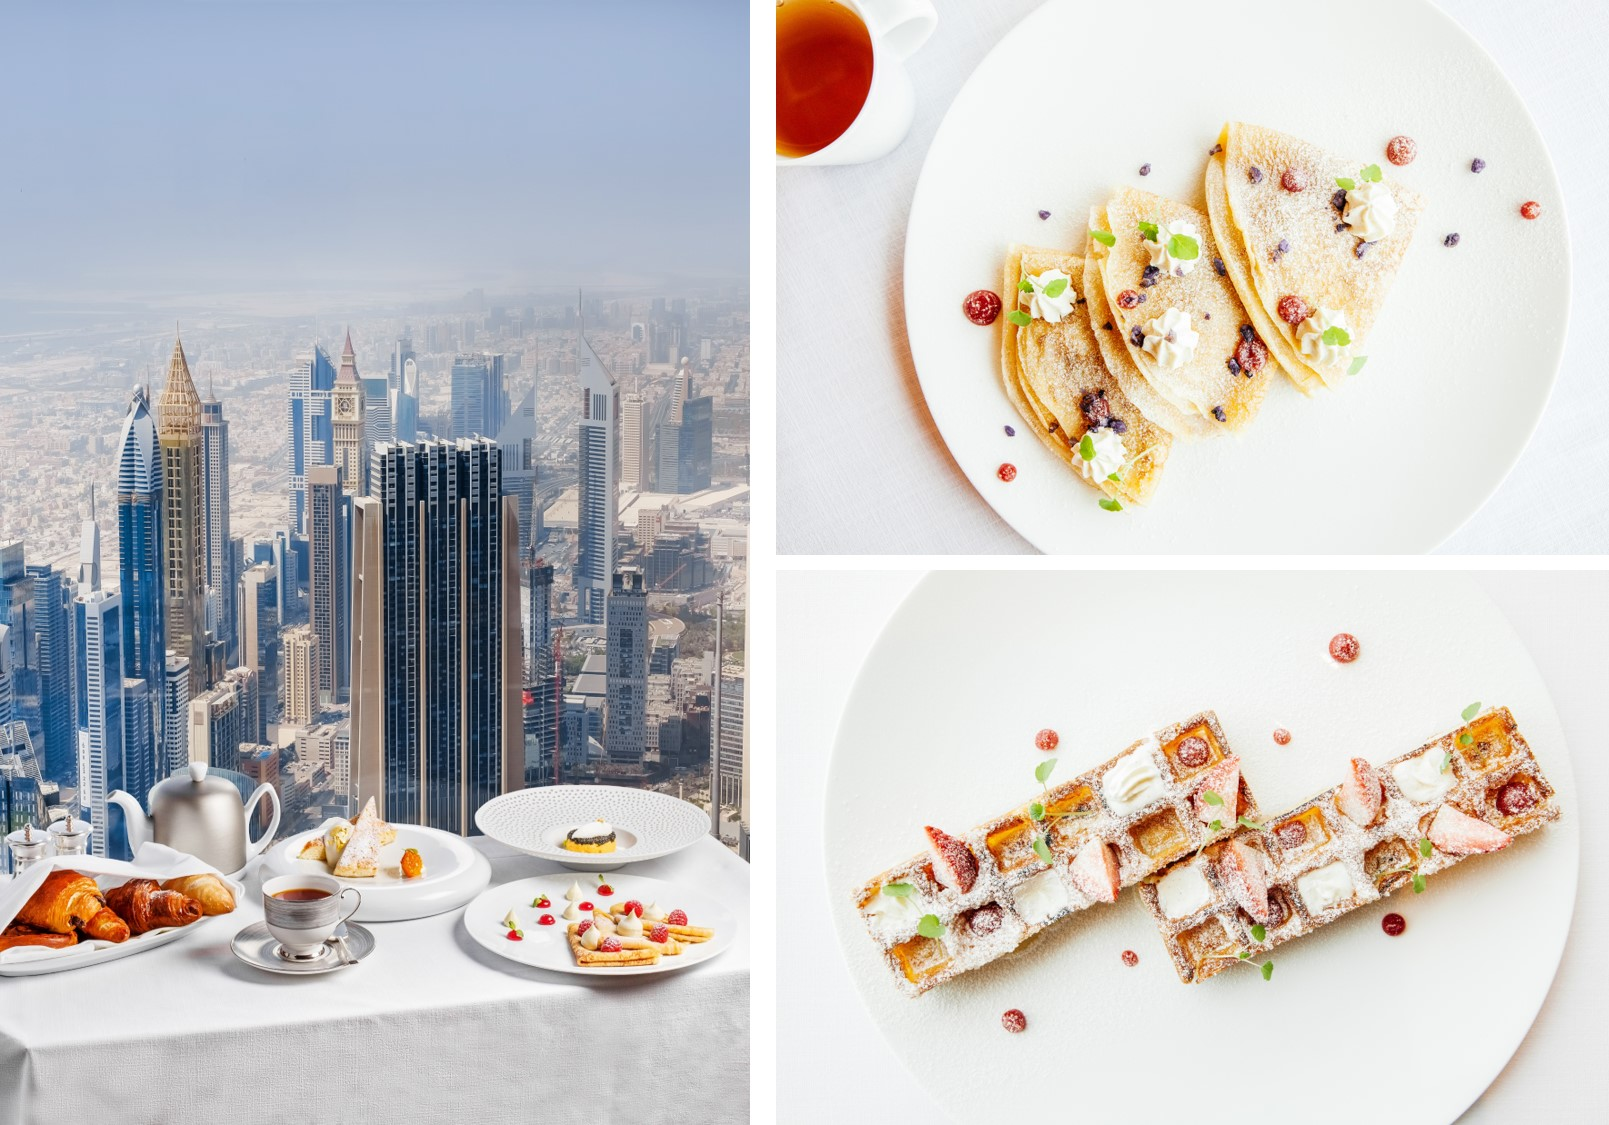 Sky-high breakfast in Dubai at At.mosphere, Burj Khalifa